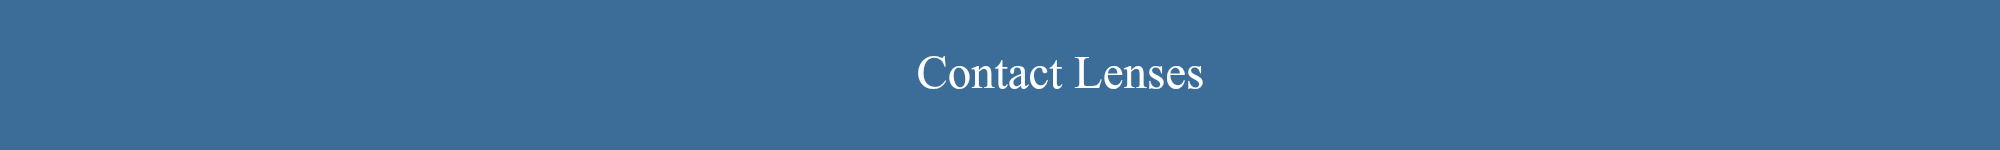 Contact-Lenses-Banner